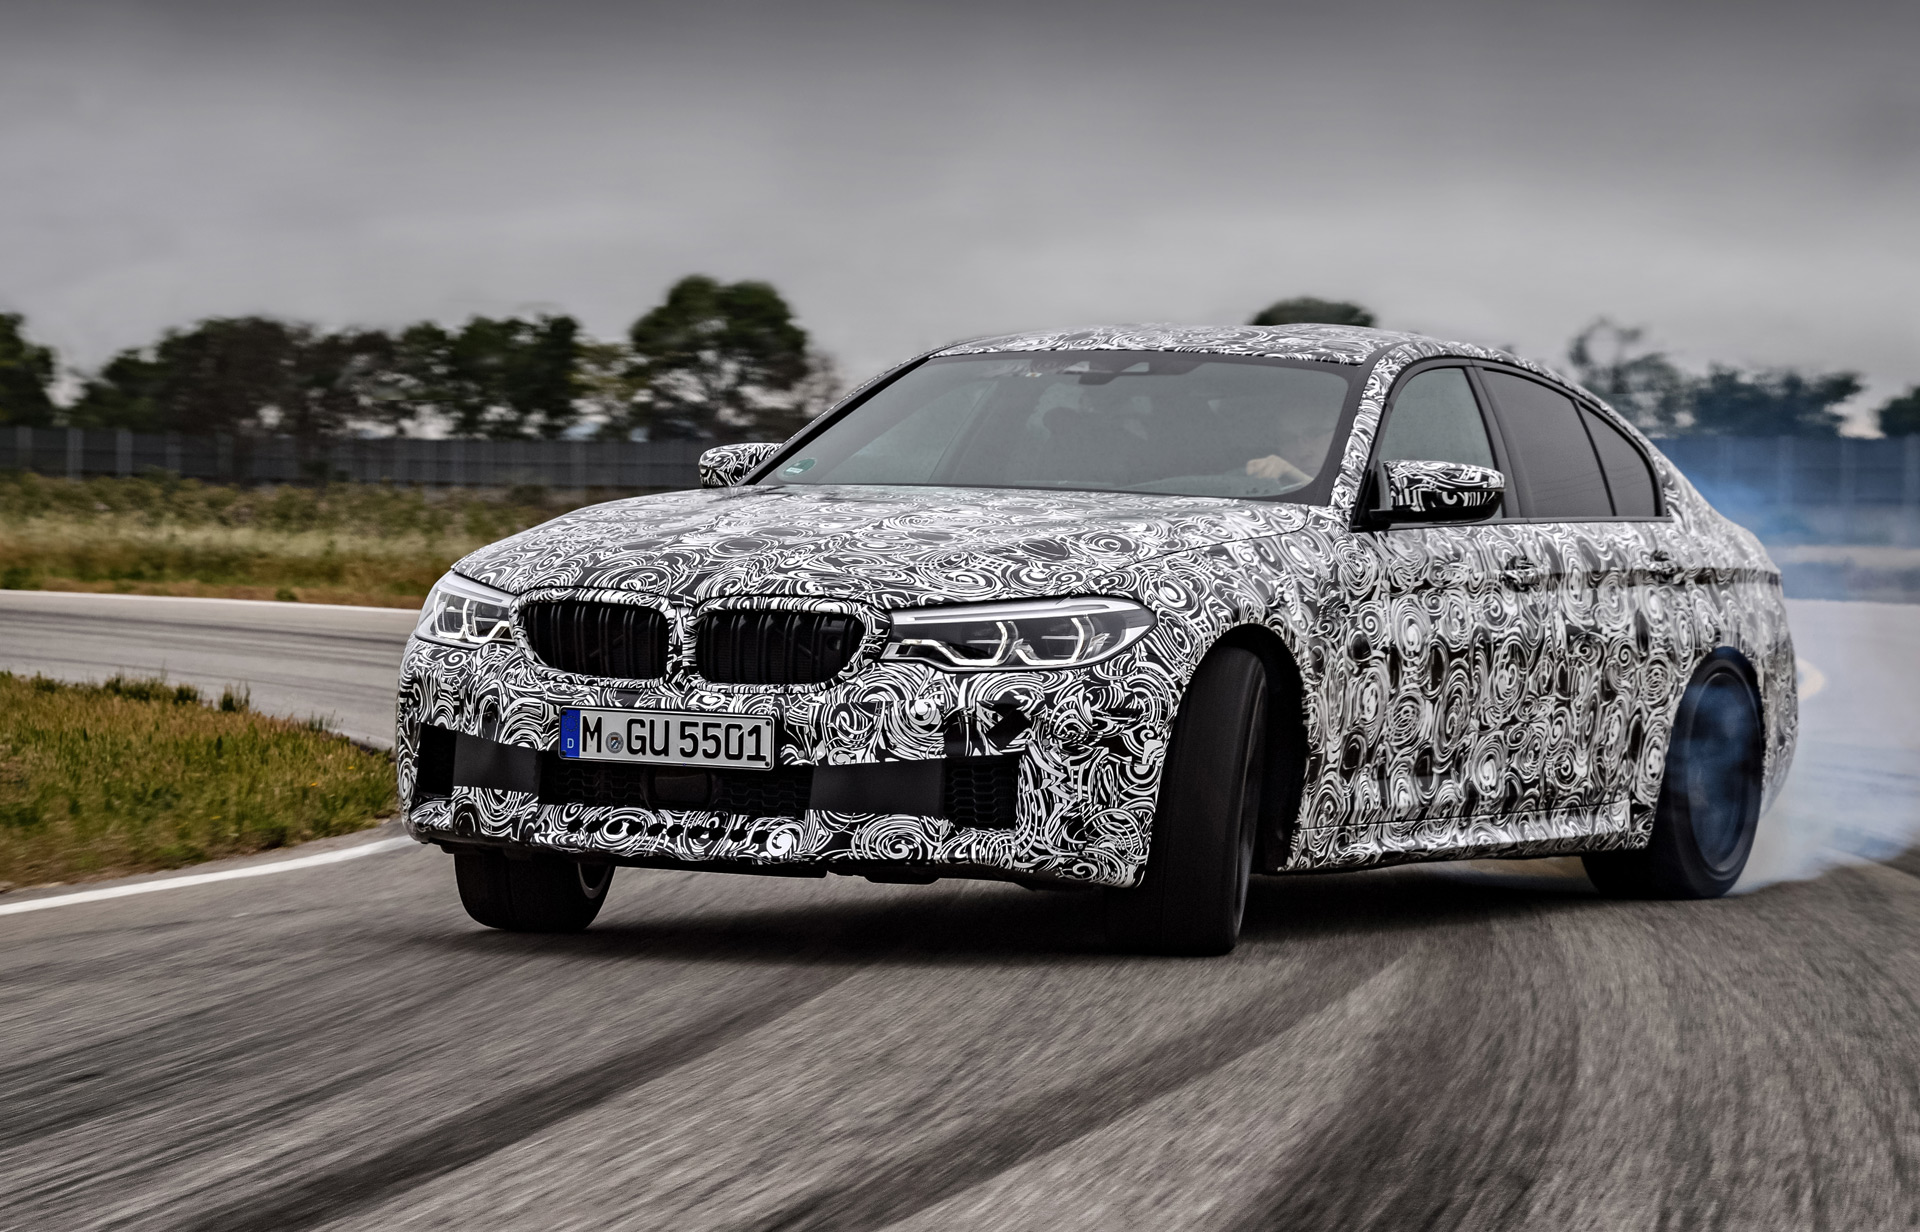 BMW Details M XDrive Allwheeldrive System Debuting On M - All bmw